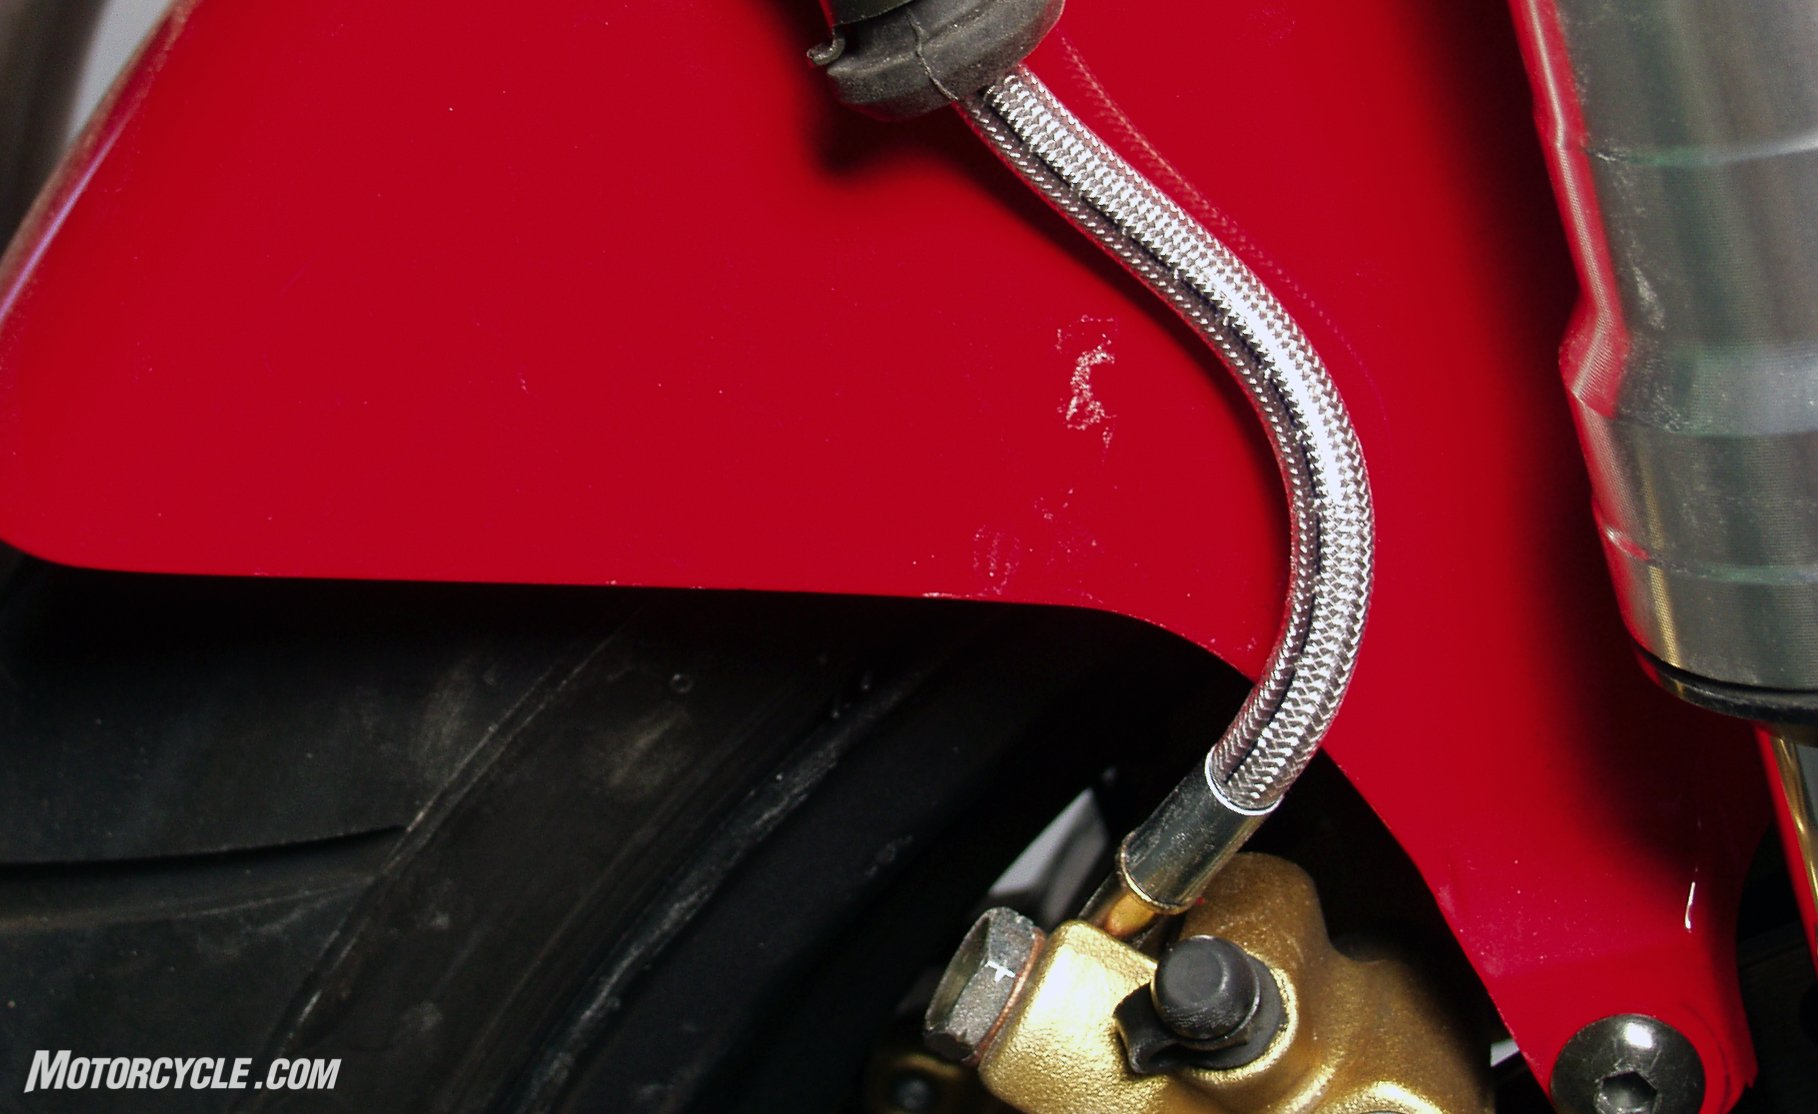 MO Wrenching: How To Install Braided Steel Brake Lines